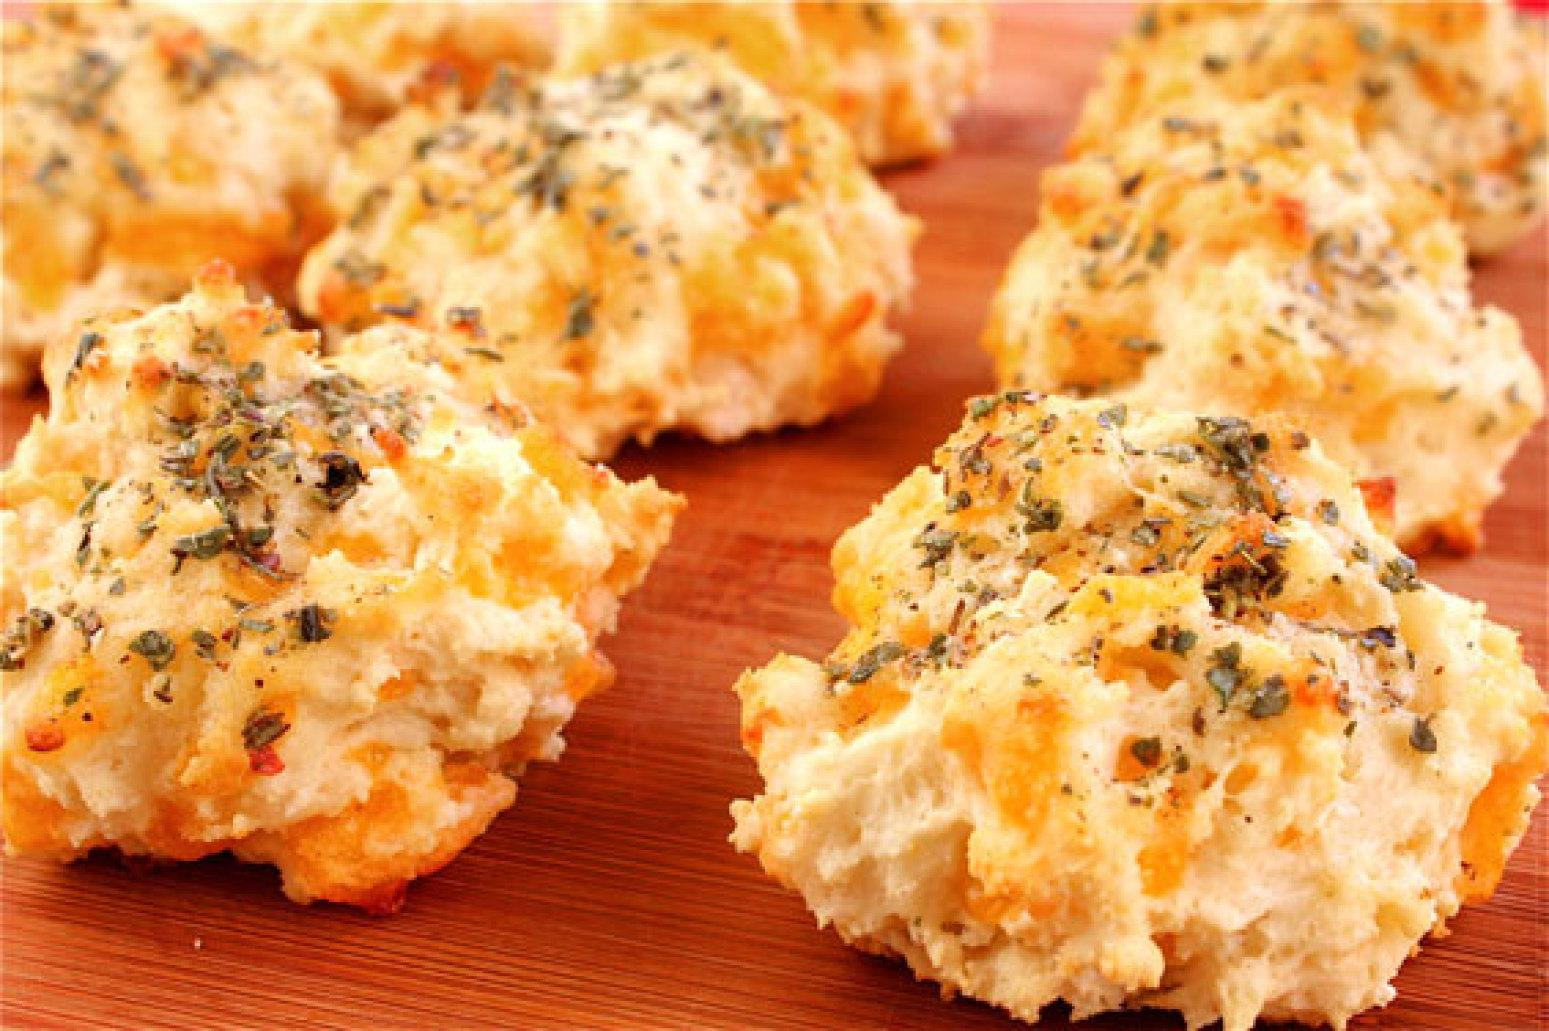 Garlic Cheddar Biscuits Recipe 2 | Just A Pinch Recipes